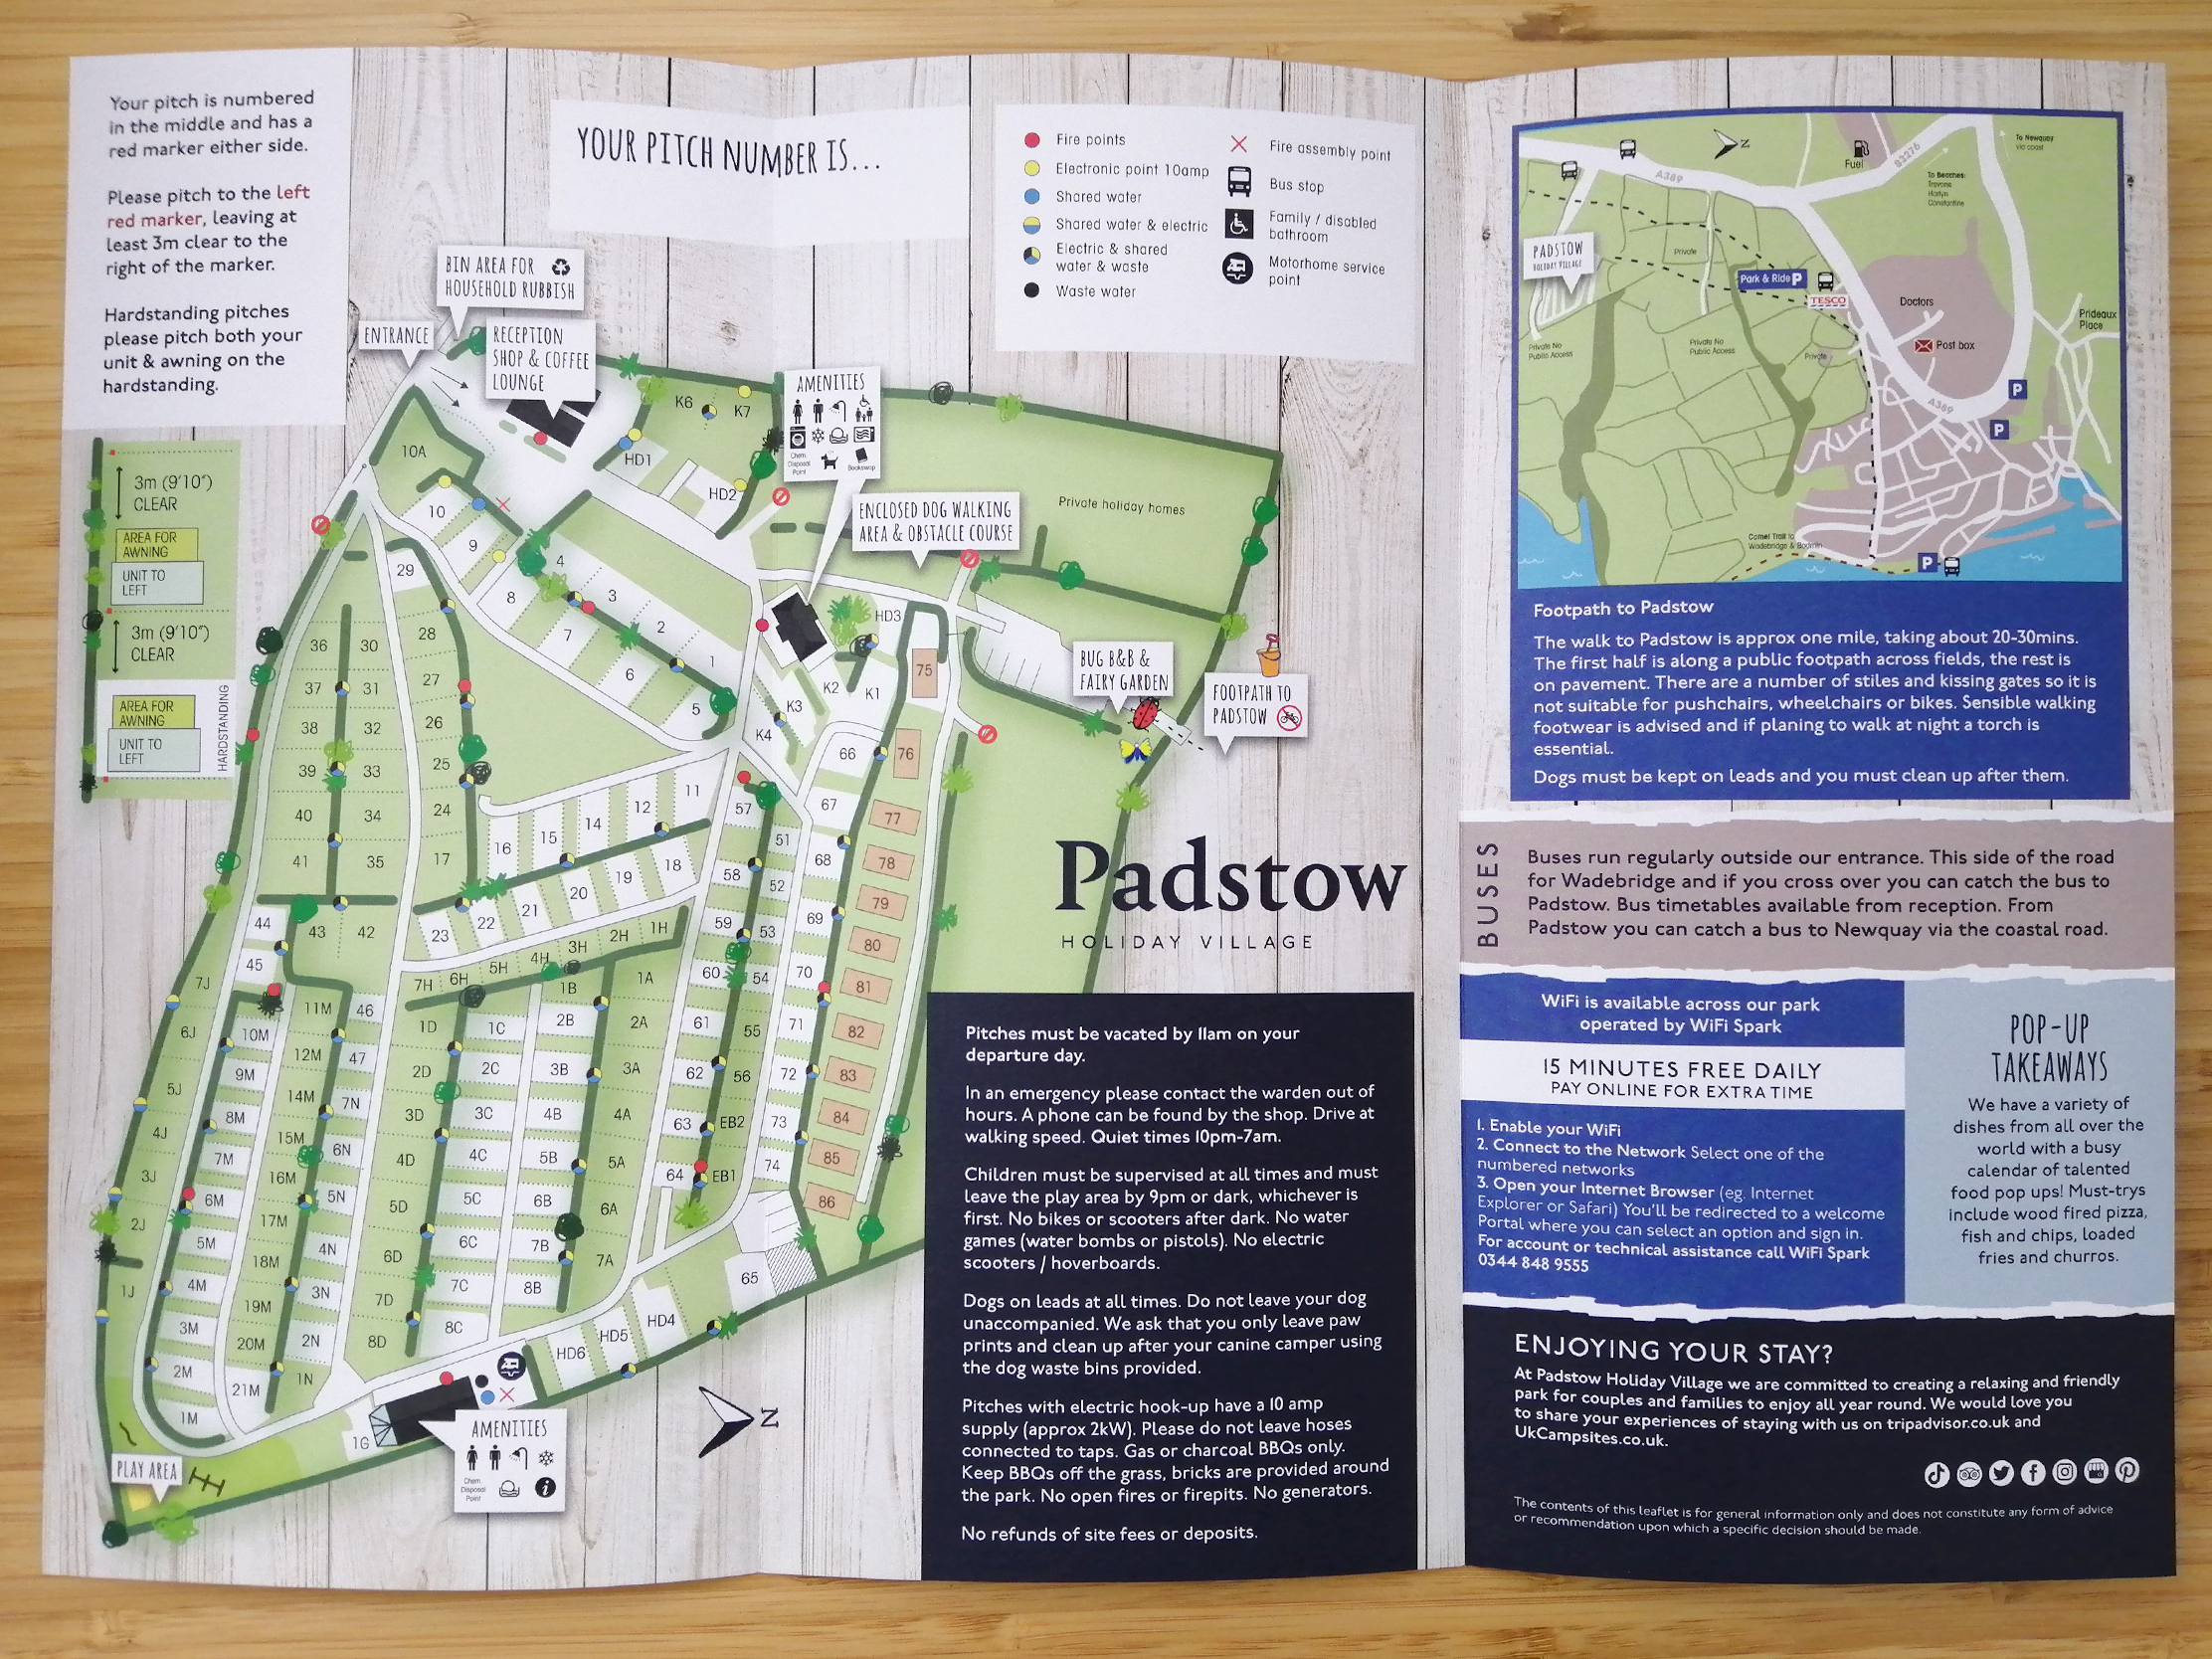 Padstow Holiday Village Map Welcome Leaflet inside